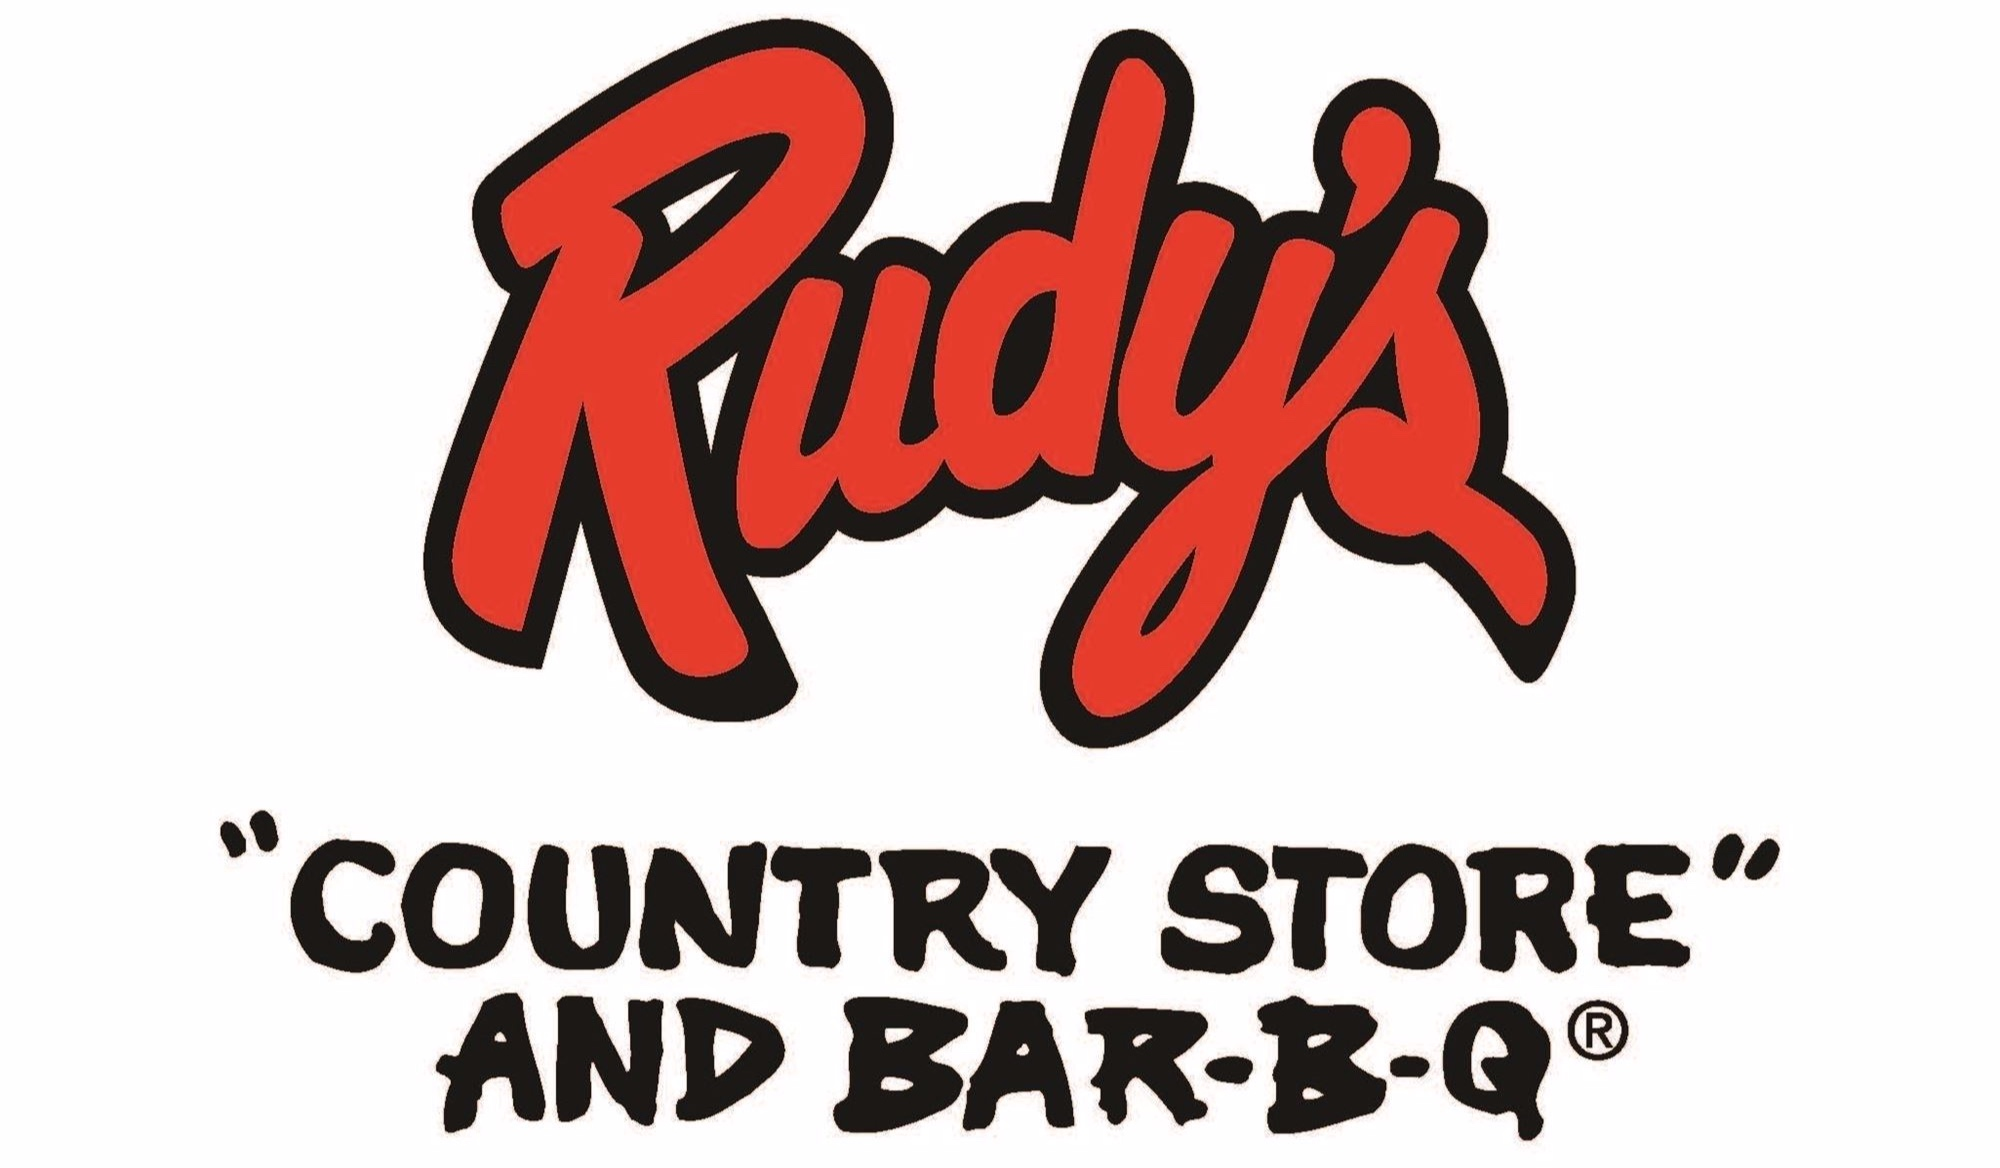 rudysbbq_red.black.signature%281%29.jpg